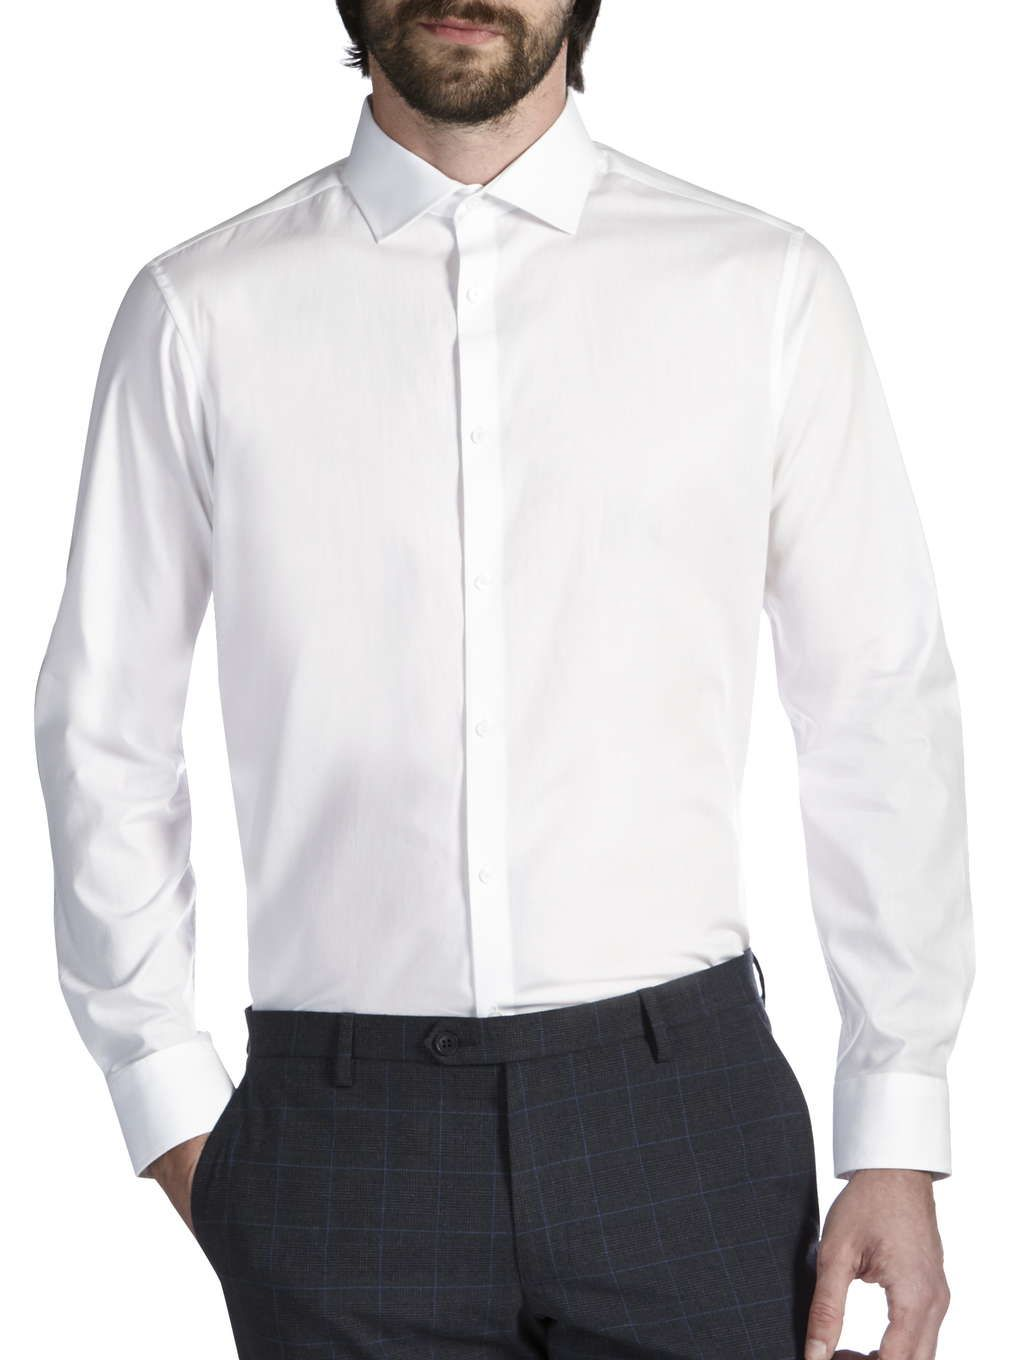 White Tailored Cotton Cutaway Collar Shirt Mens Clothing View All